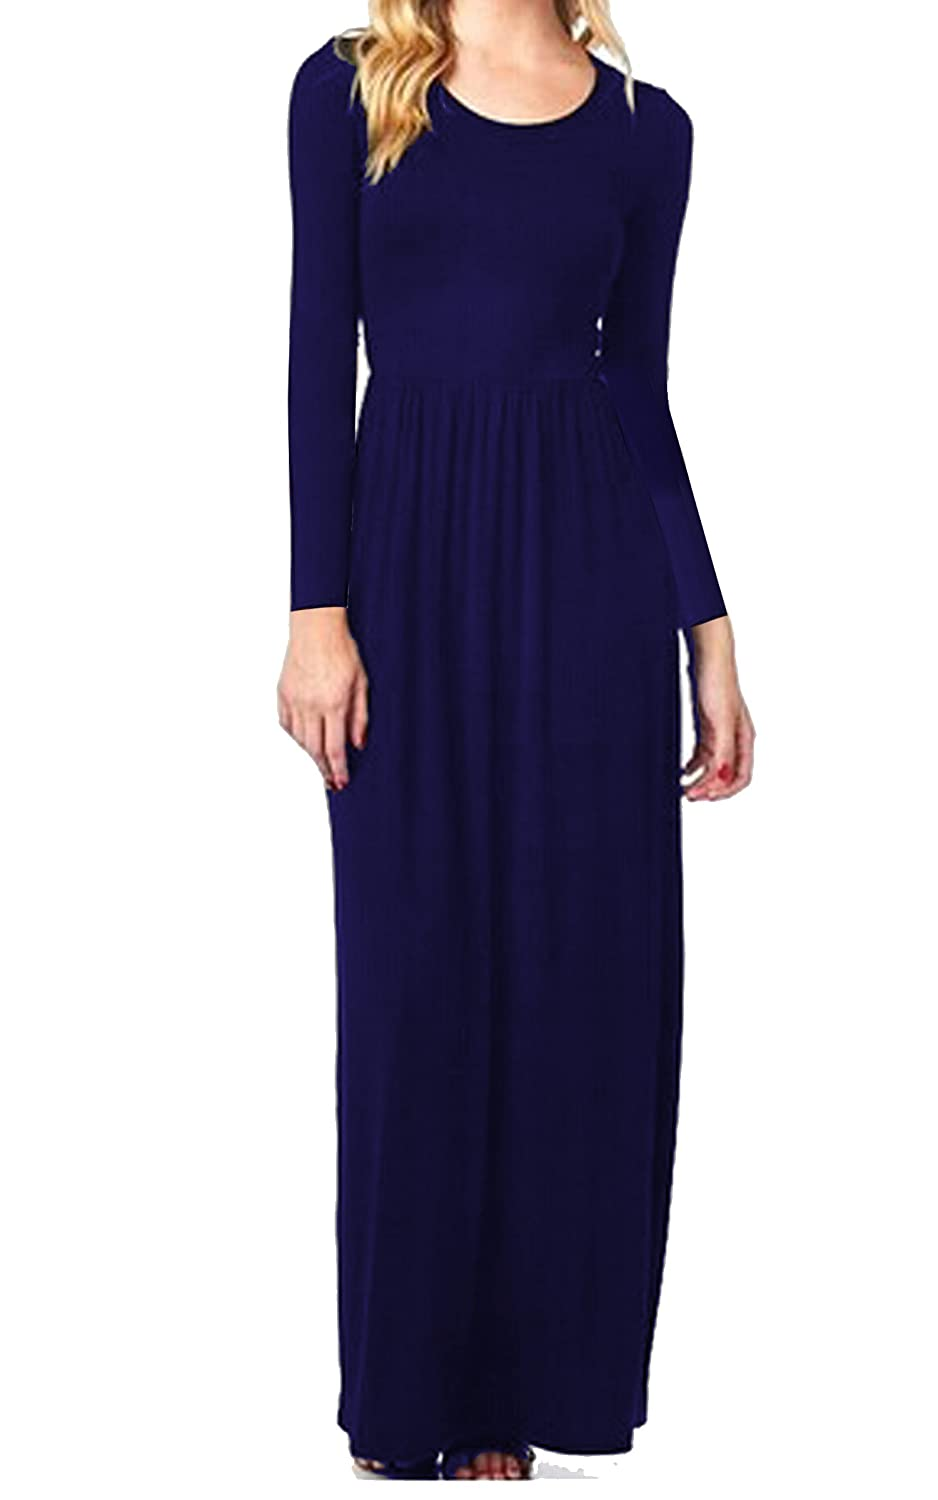 68c73f142f Meaneor Women's 3 4 Sleeve Solid Plus Maxi Long Dress with Elastic  Waistband at Amazon Women's Clothing store: